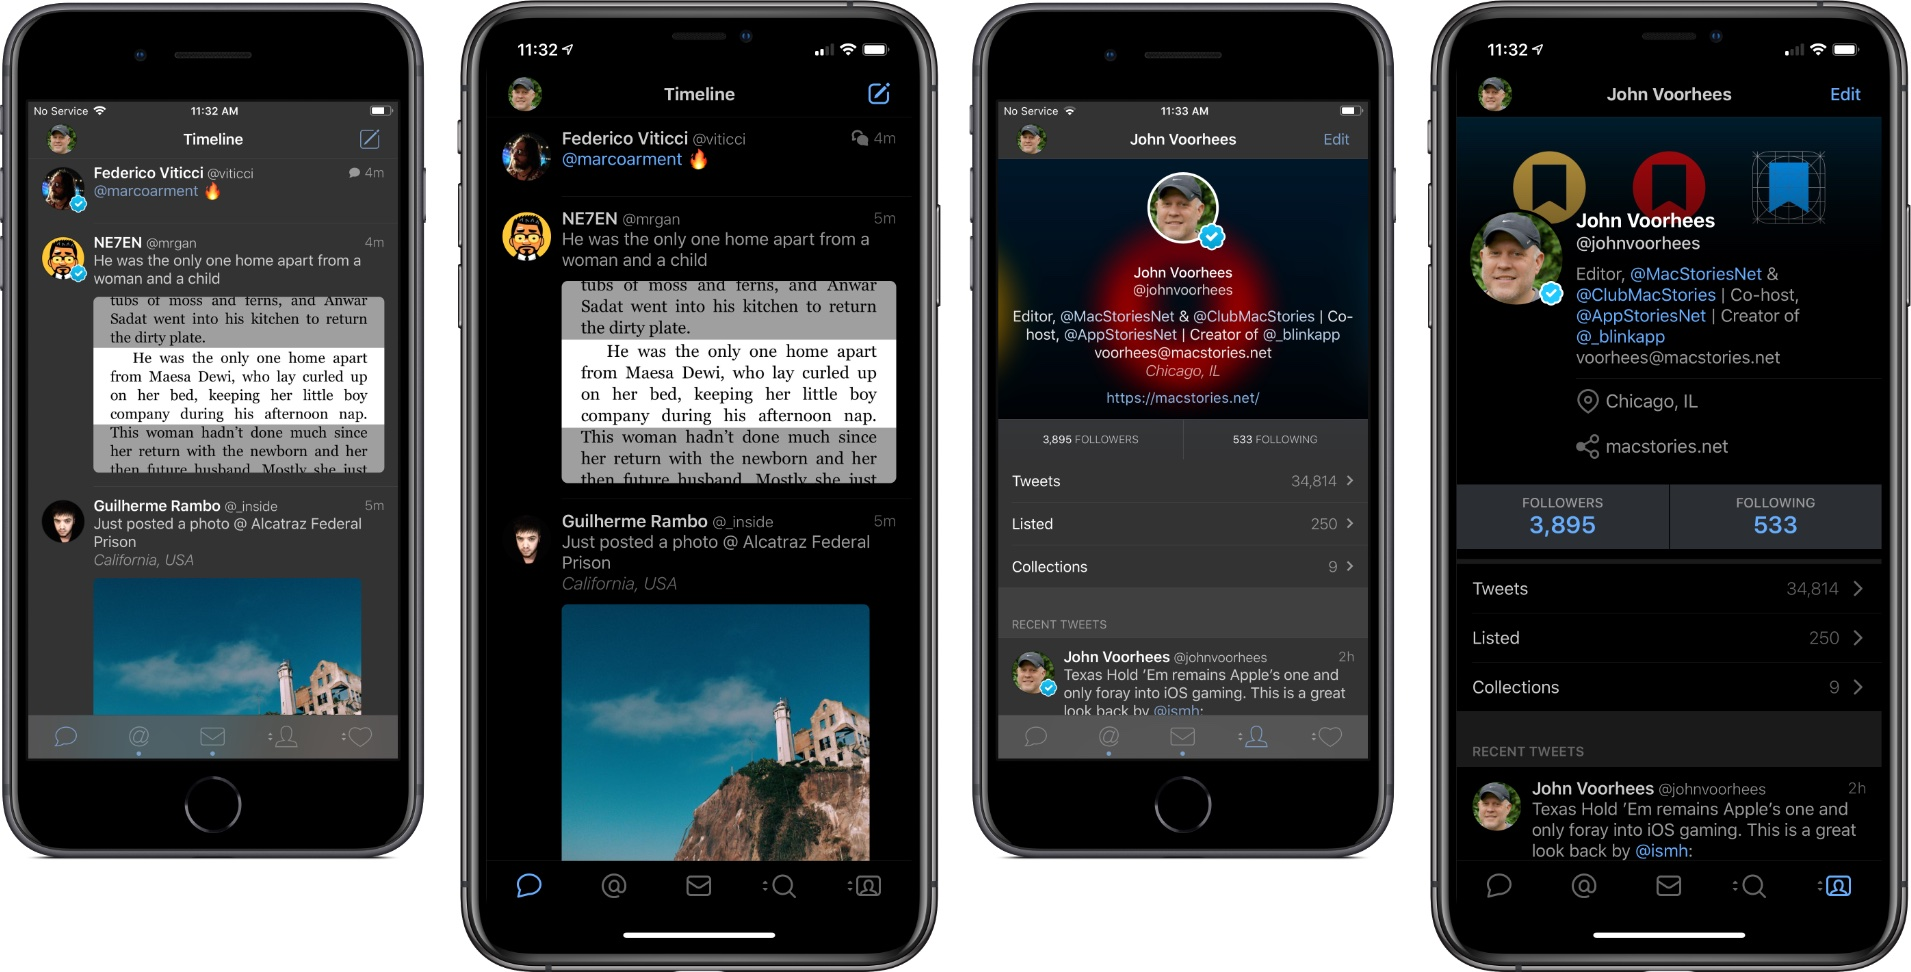 A comparison of Tweetbot 4's timeline and profile views to the new ones in Tweetbot 5.